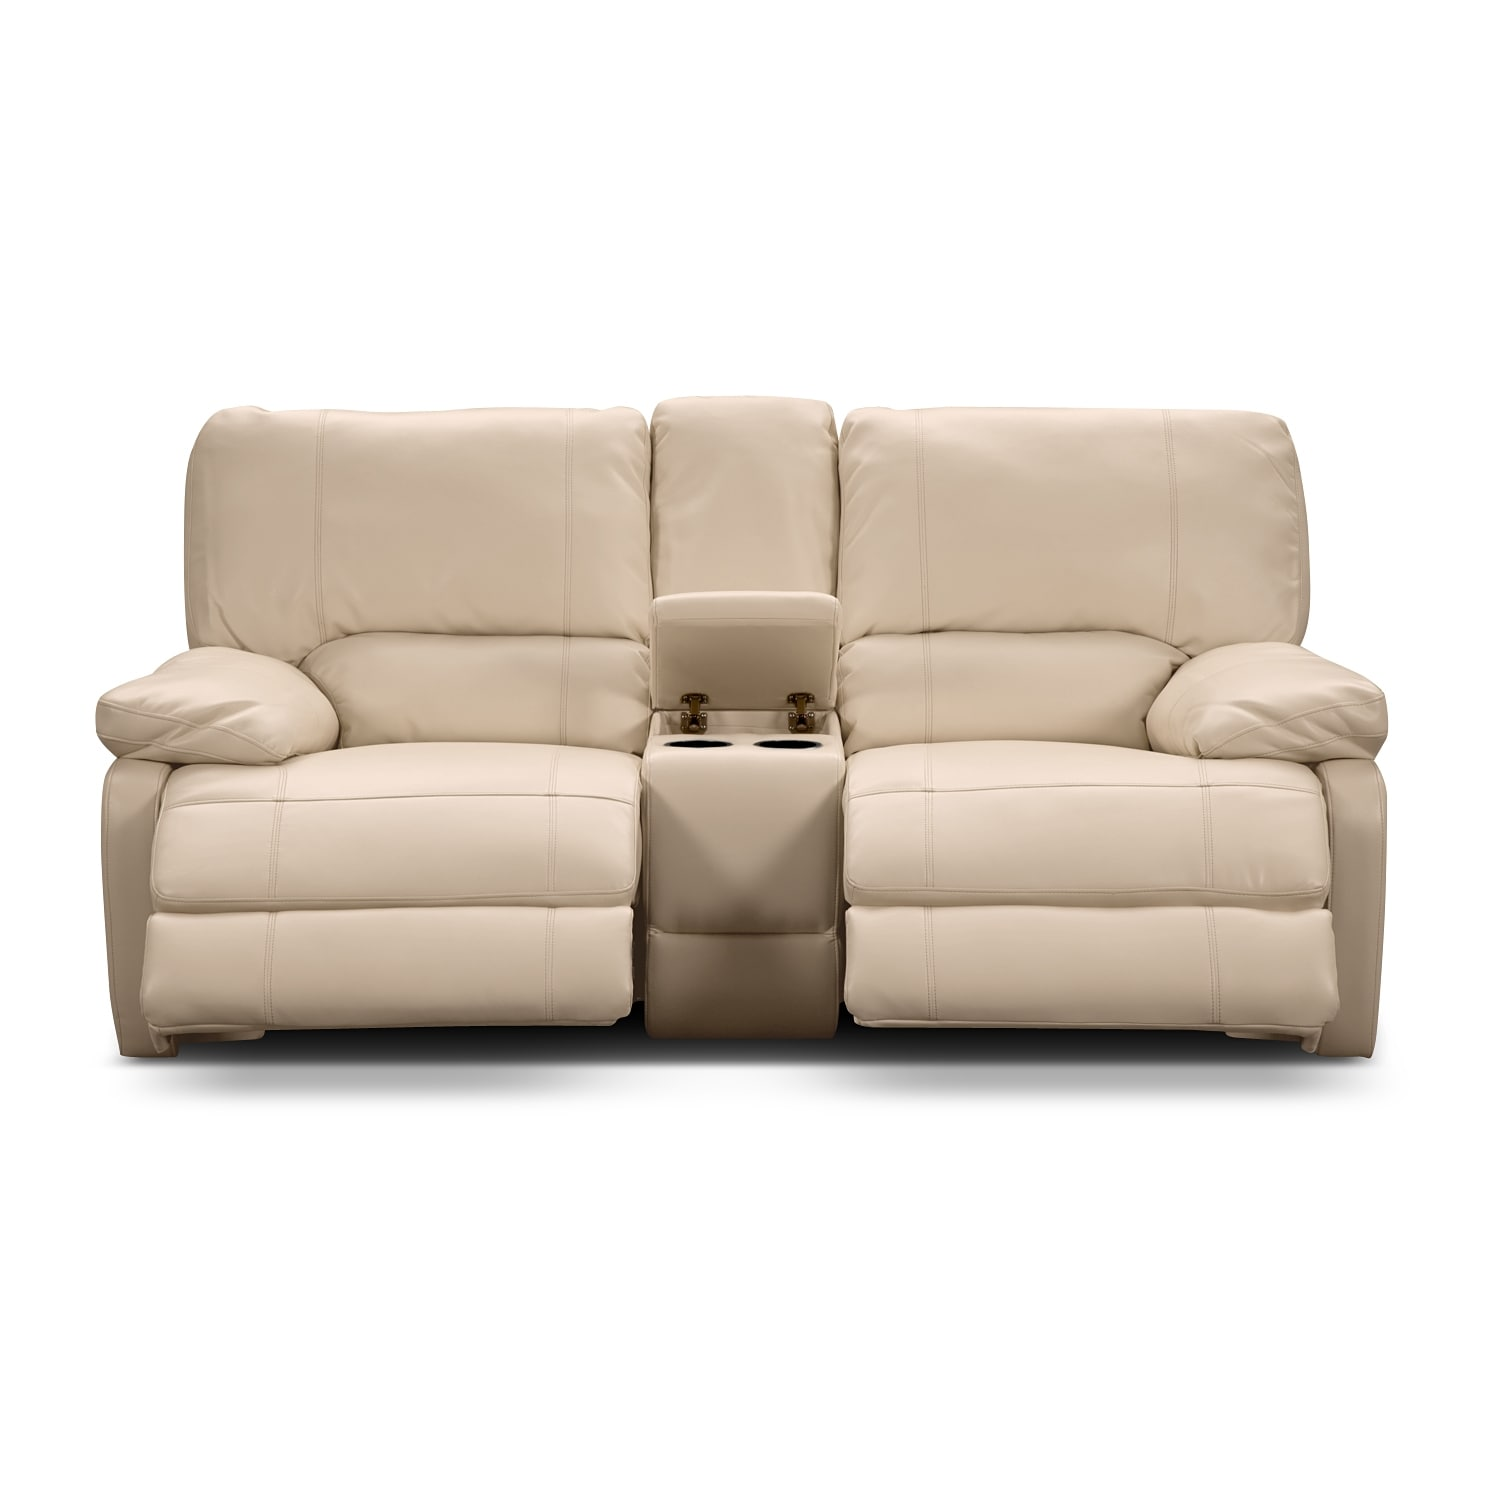 Coronado leather power reclining loveseat value city furniture Reclining loveseat sale